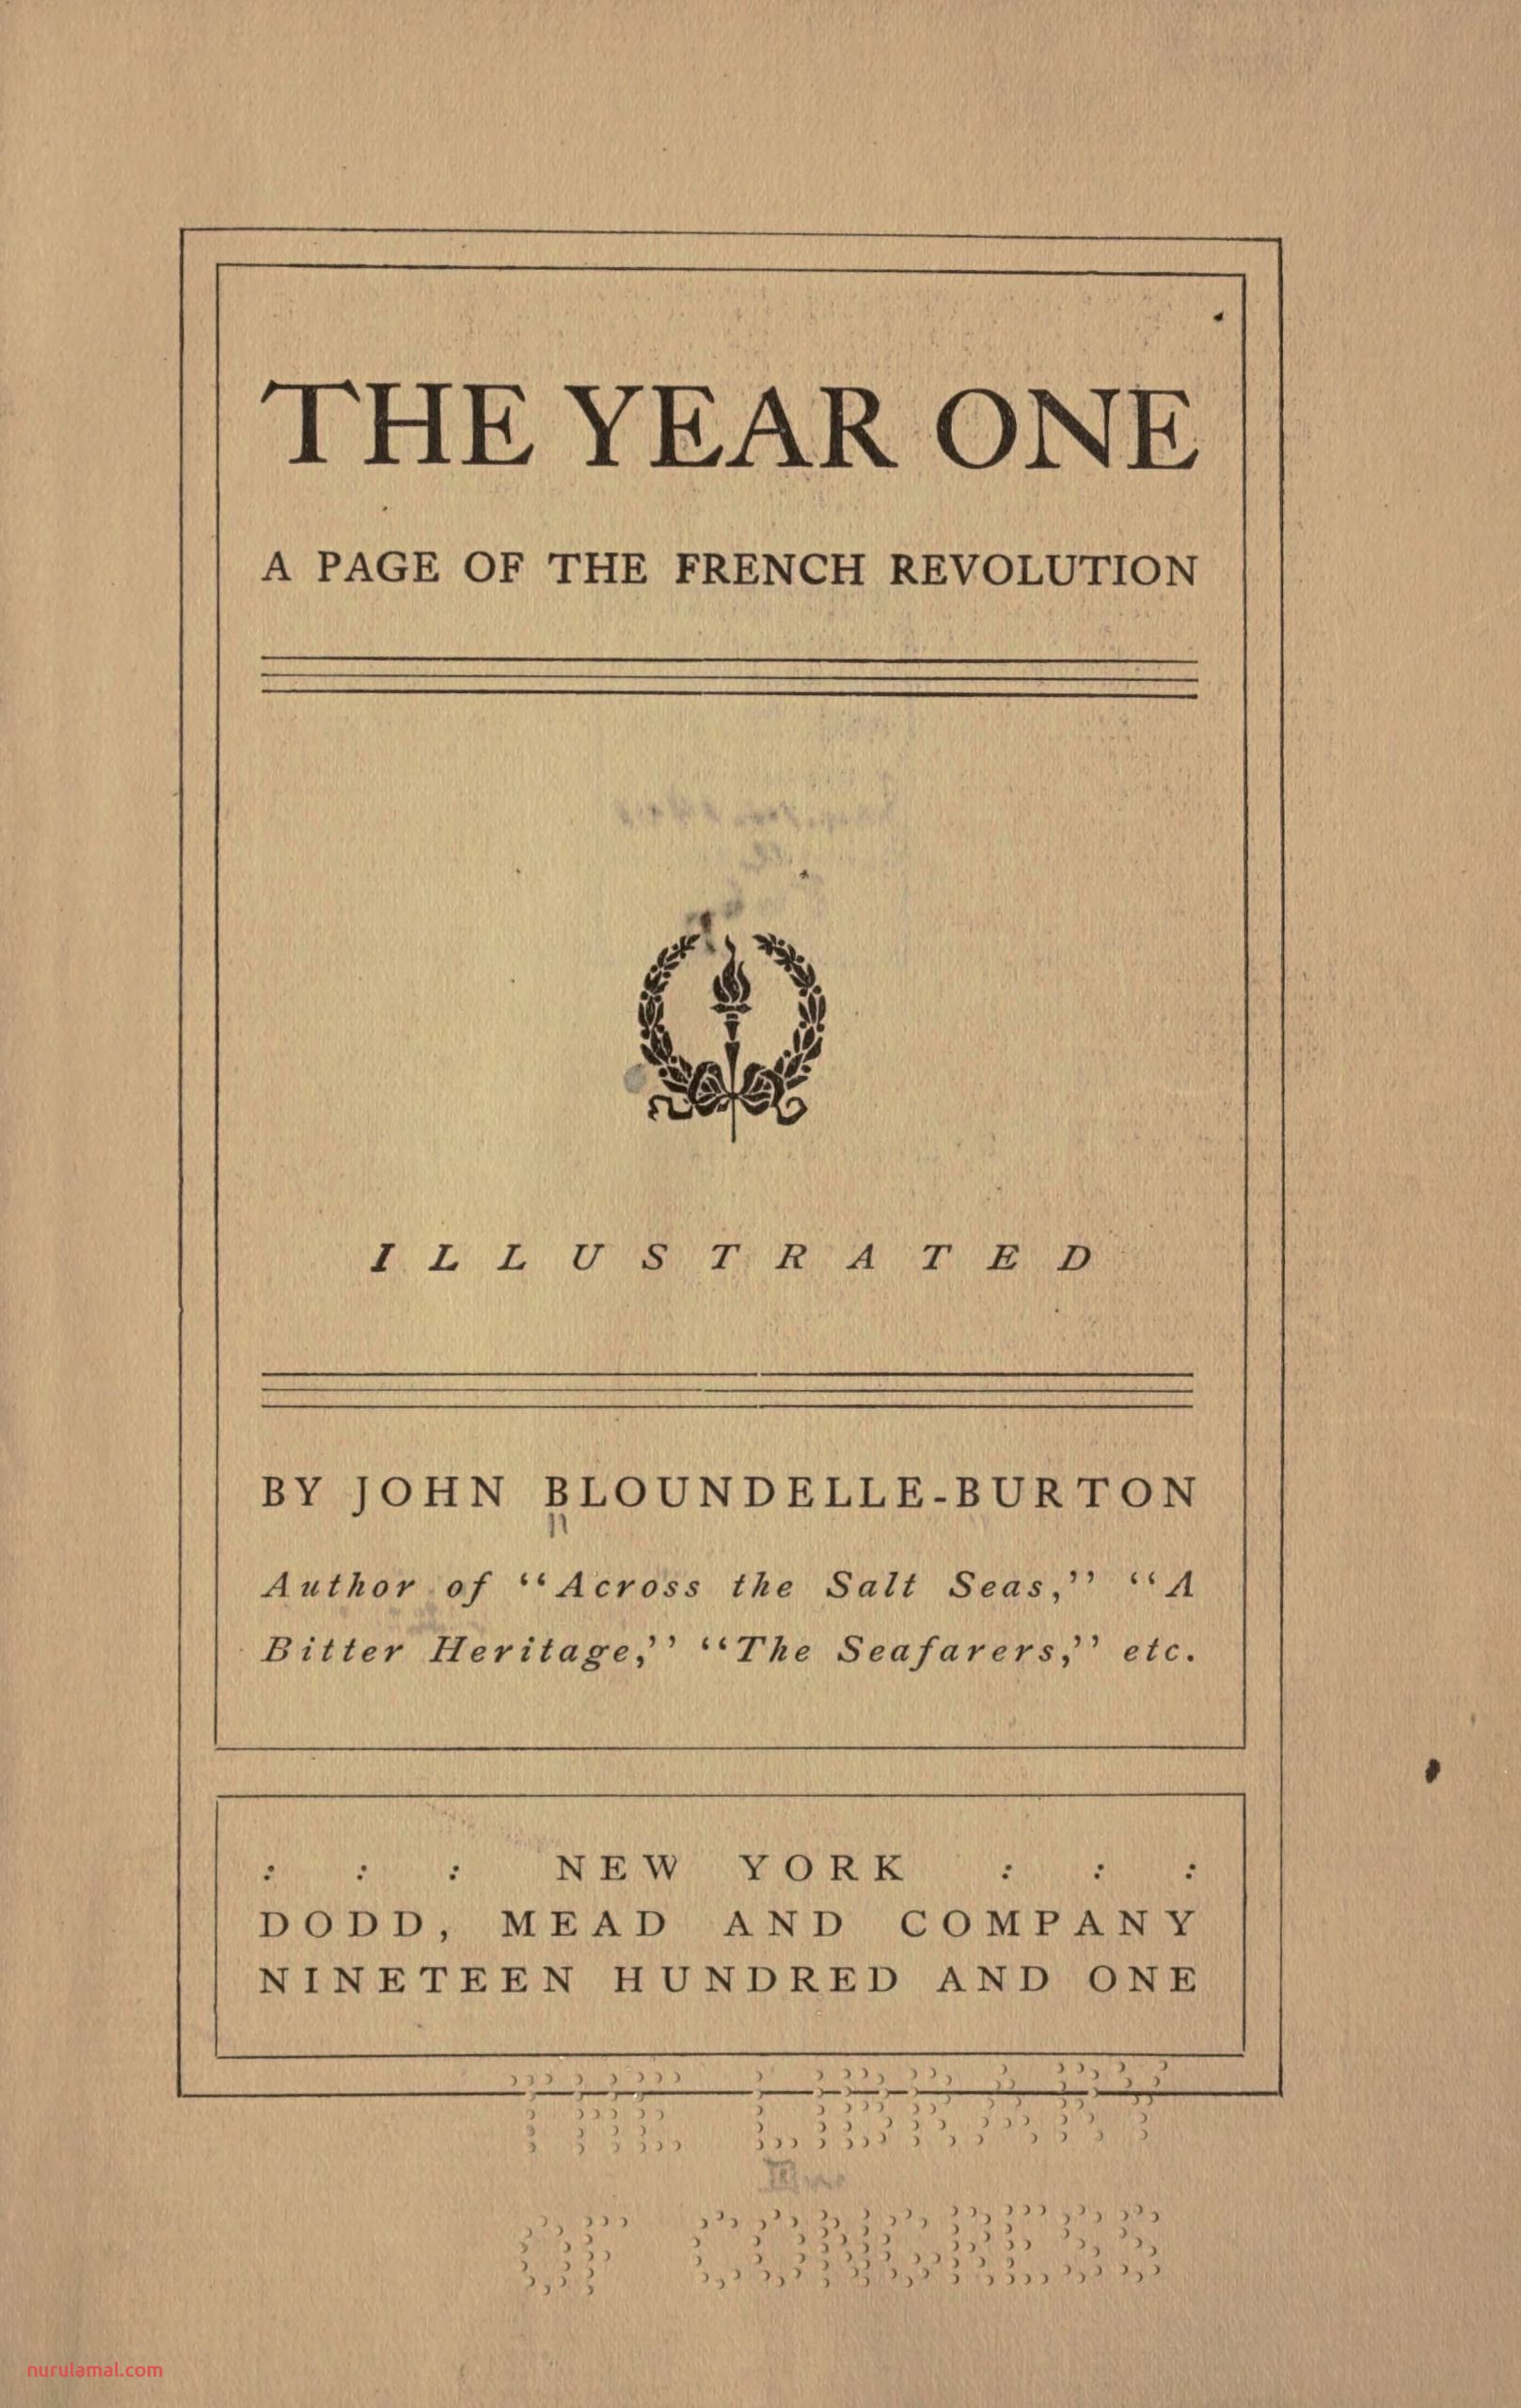 The Year One A Page Of the French Revolution